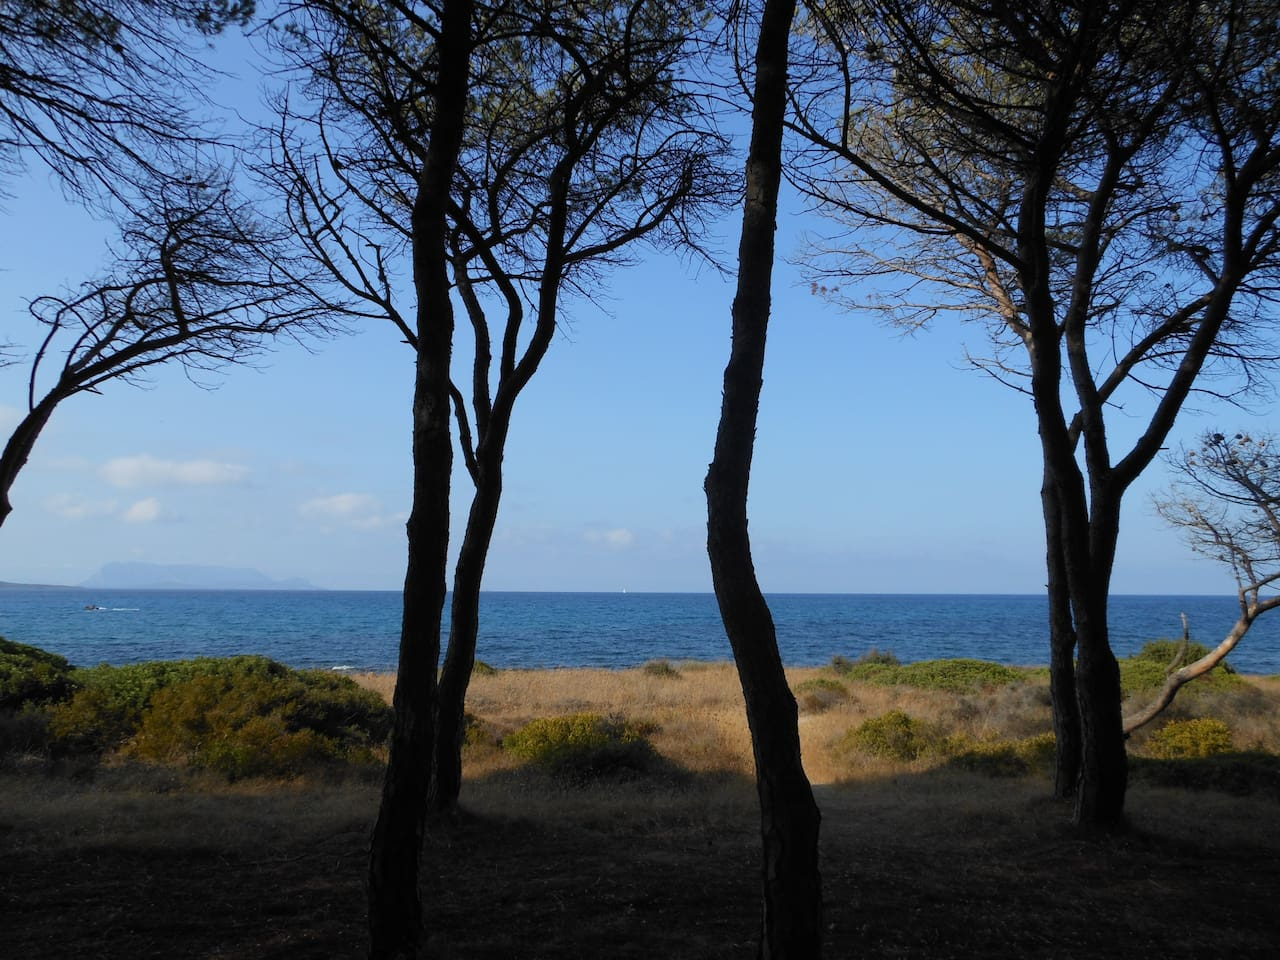 Local beach and pine forest.